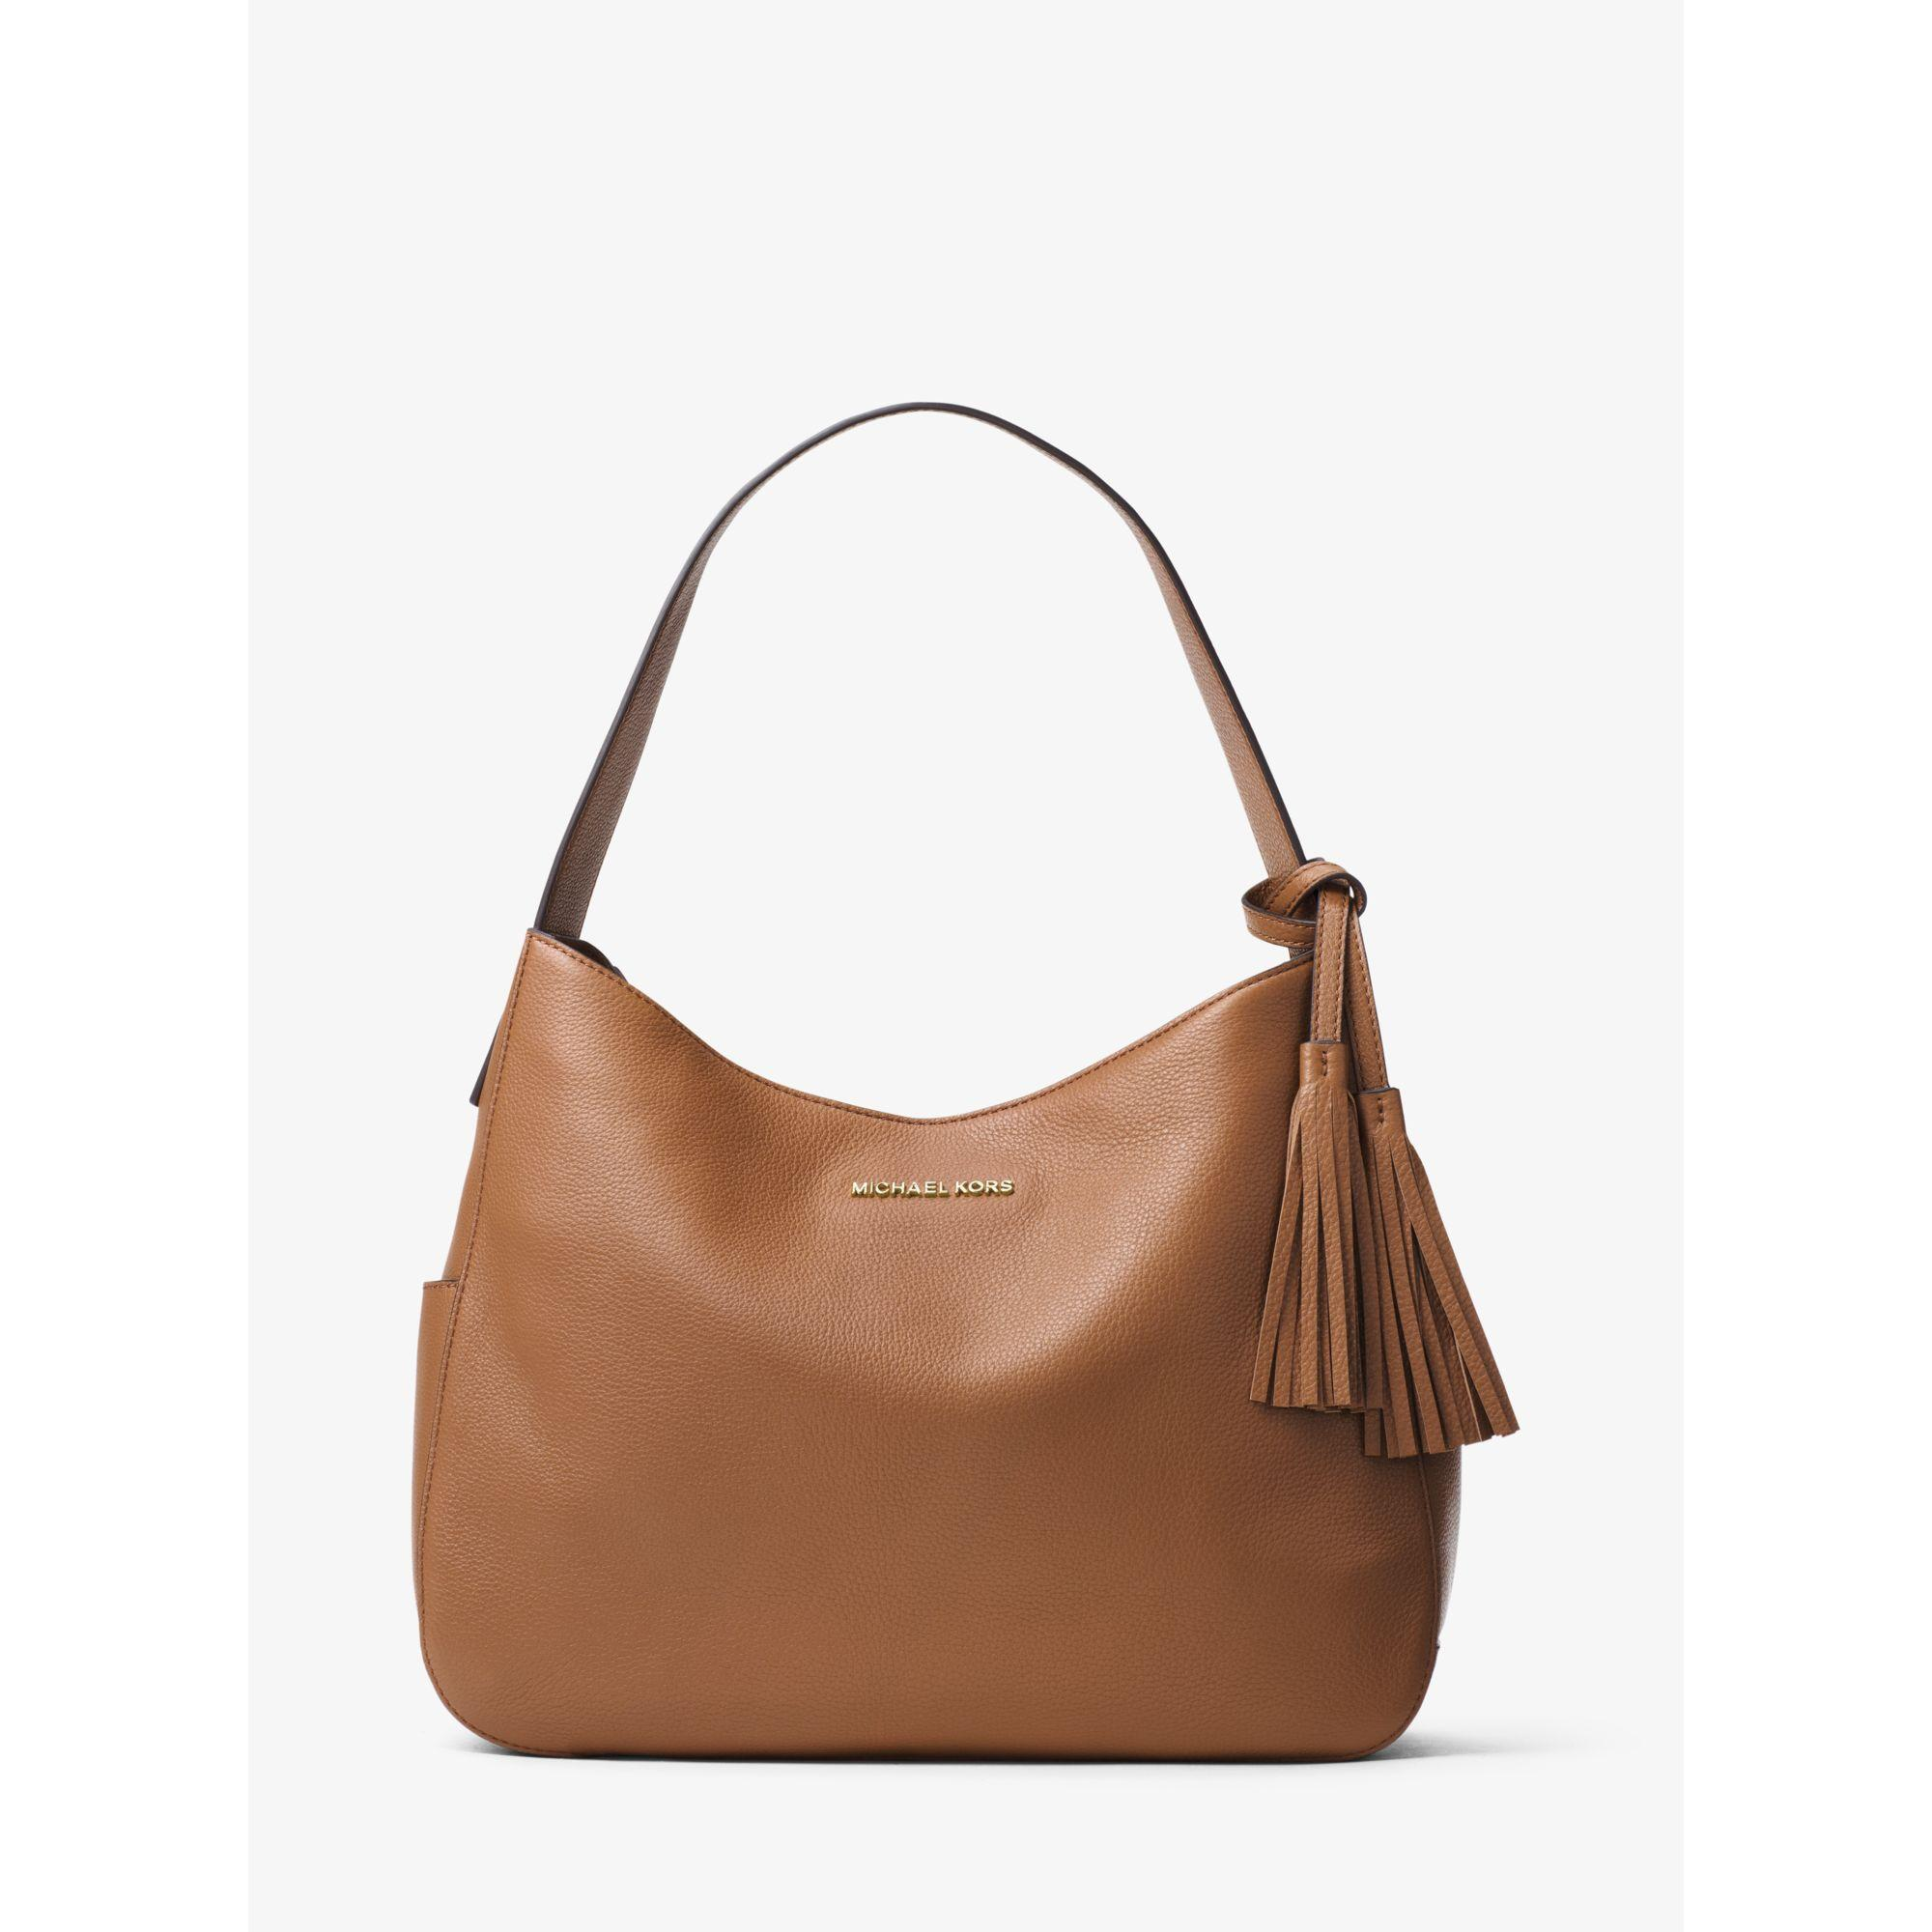 eb7f5293ea84 Lyst - Michael Kors Ashbury Large Leather Shoulder Bag in Brown